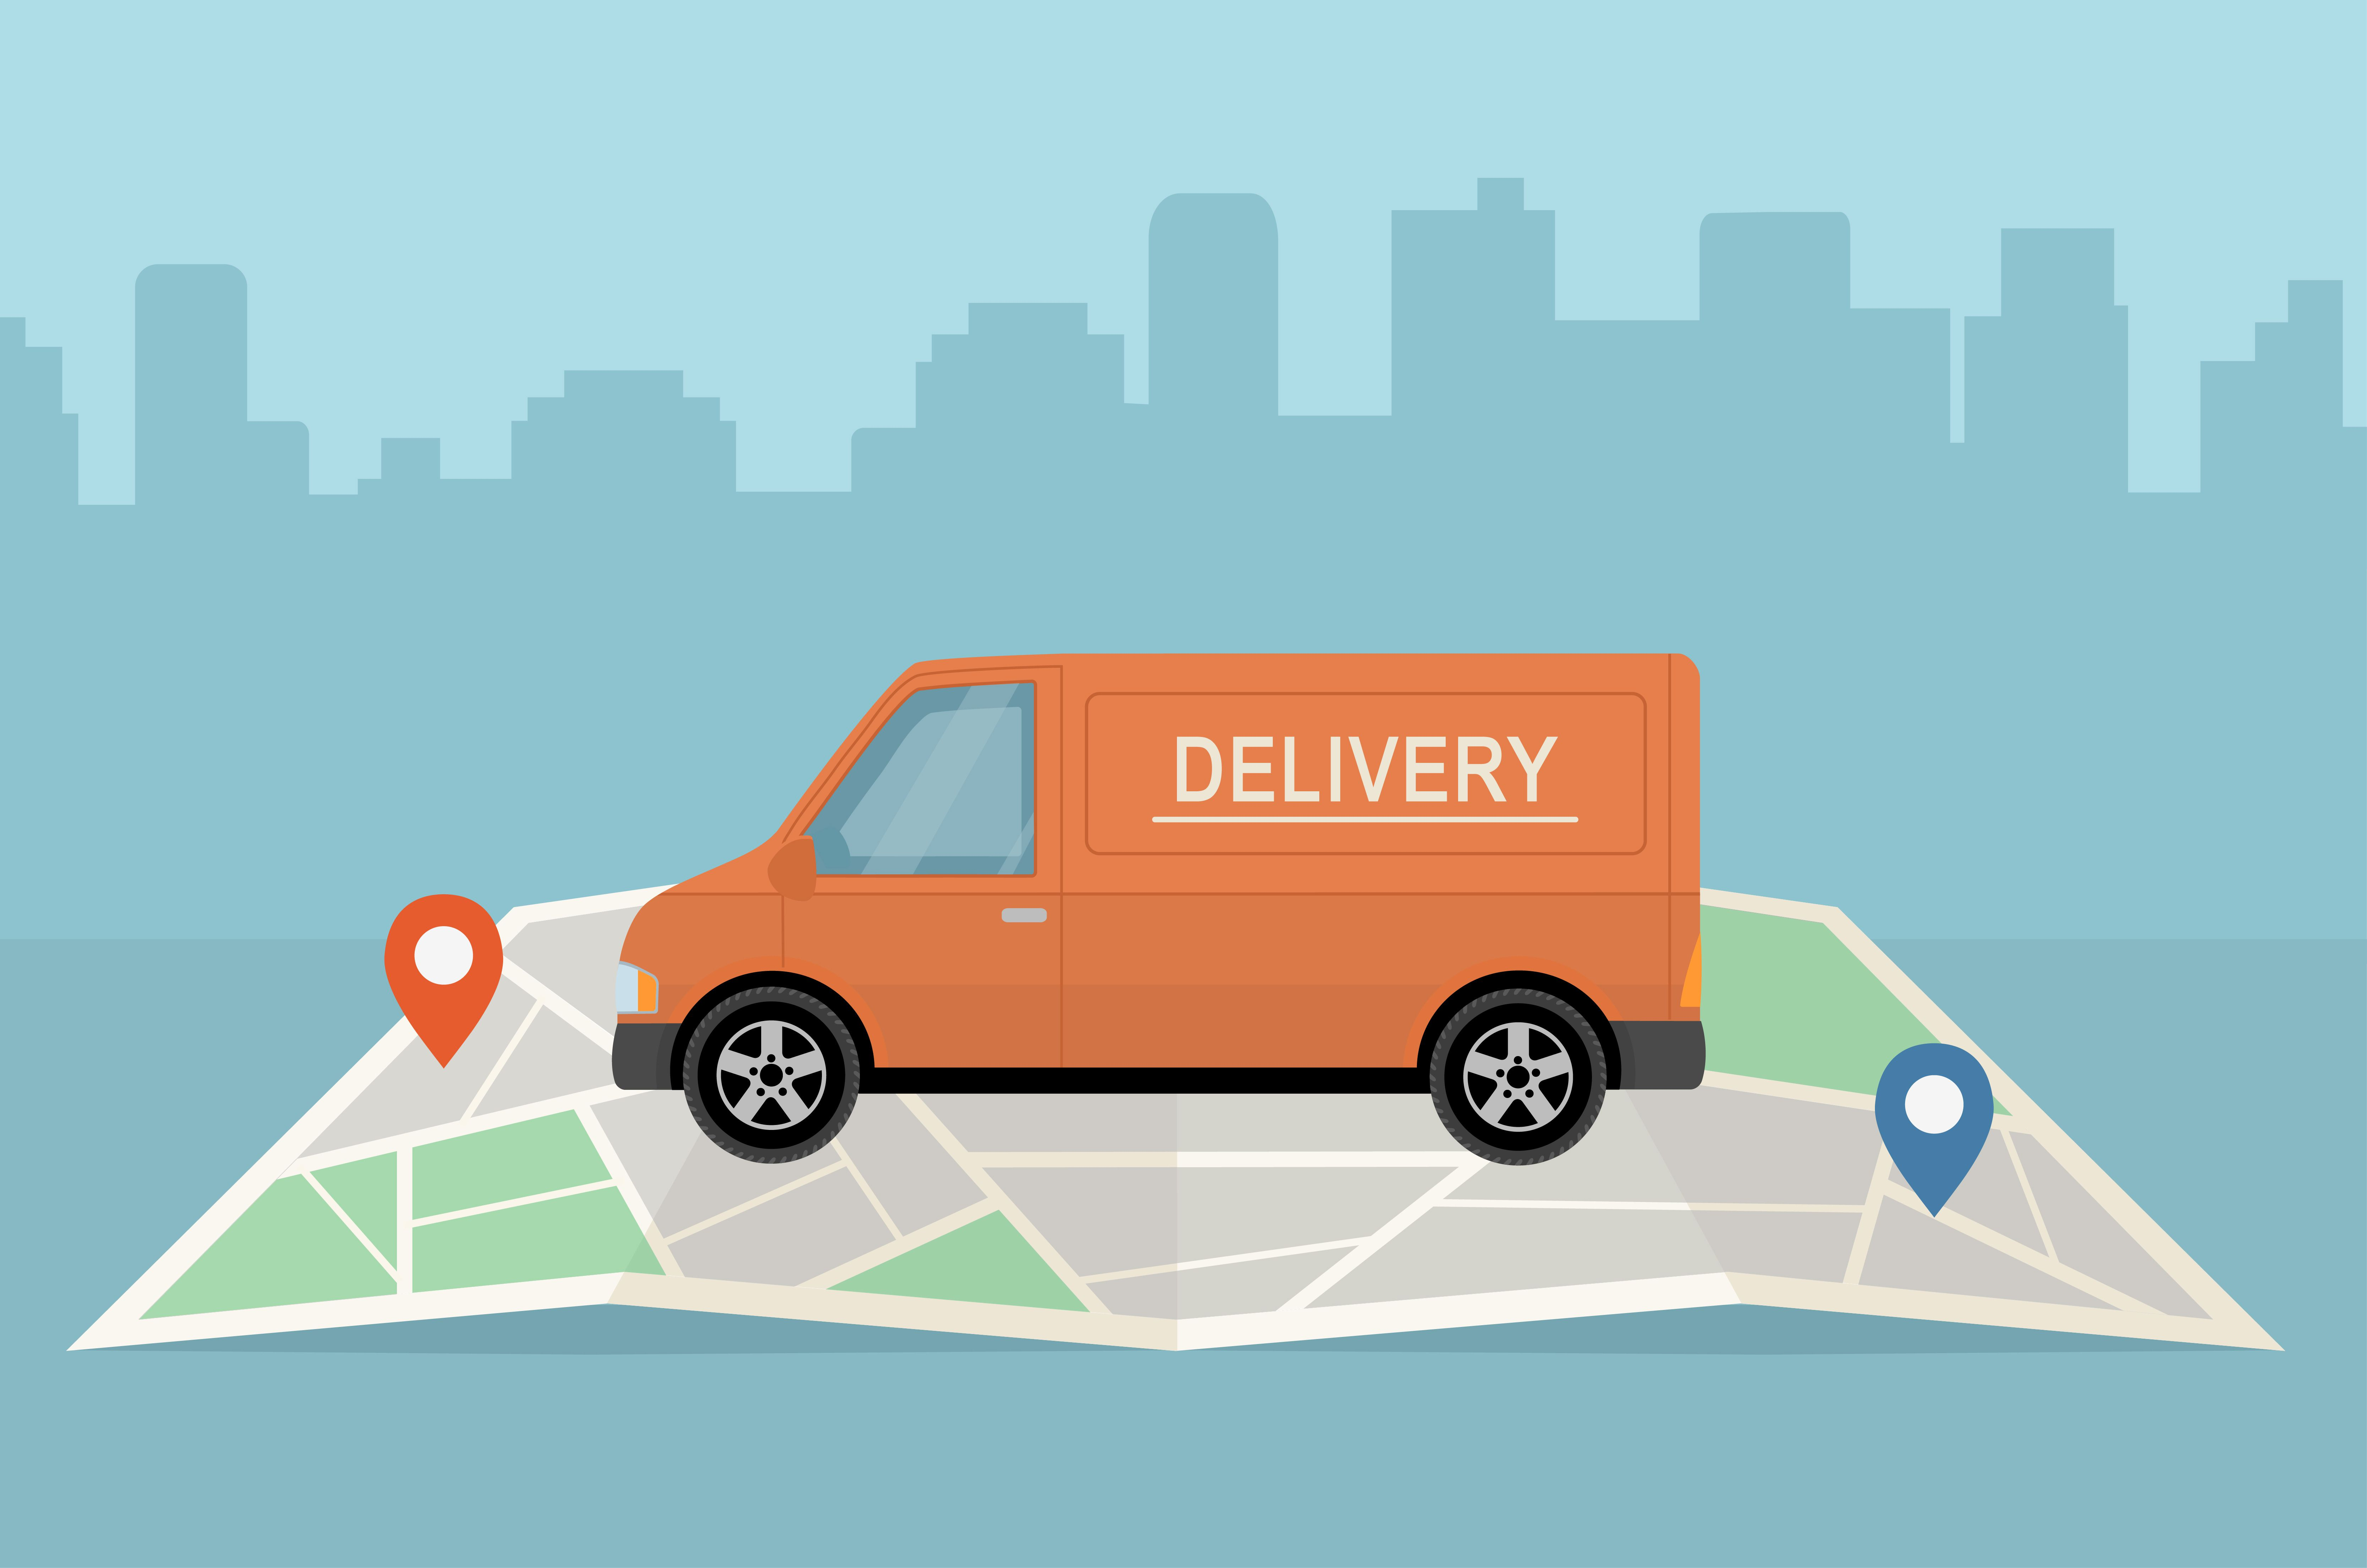 Delivery van and map on city background. Transport services, logistics and freight of goods concept.